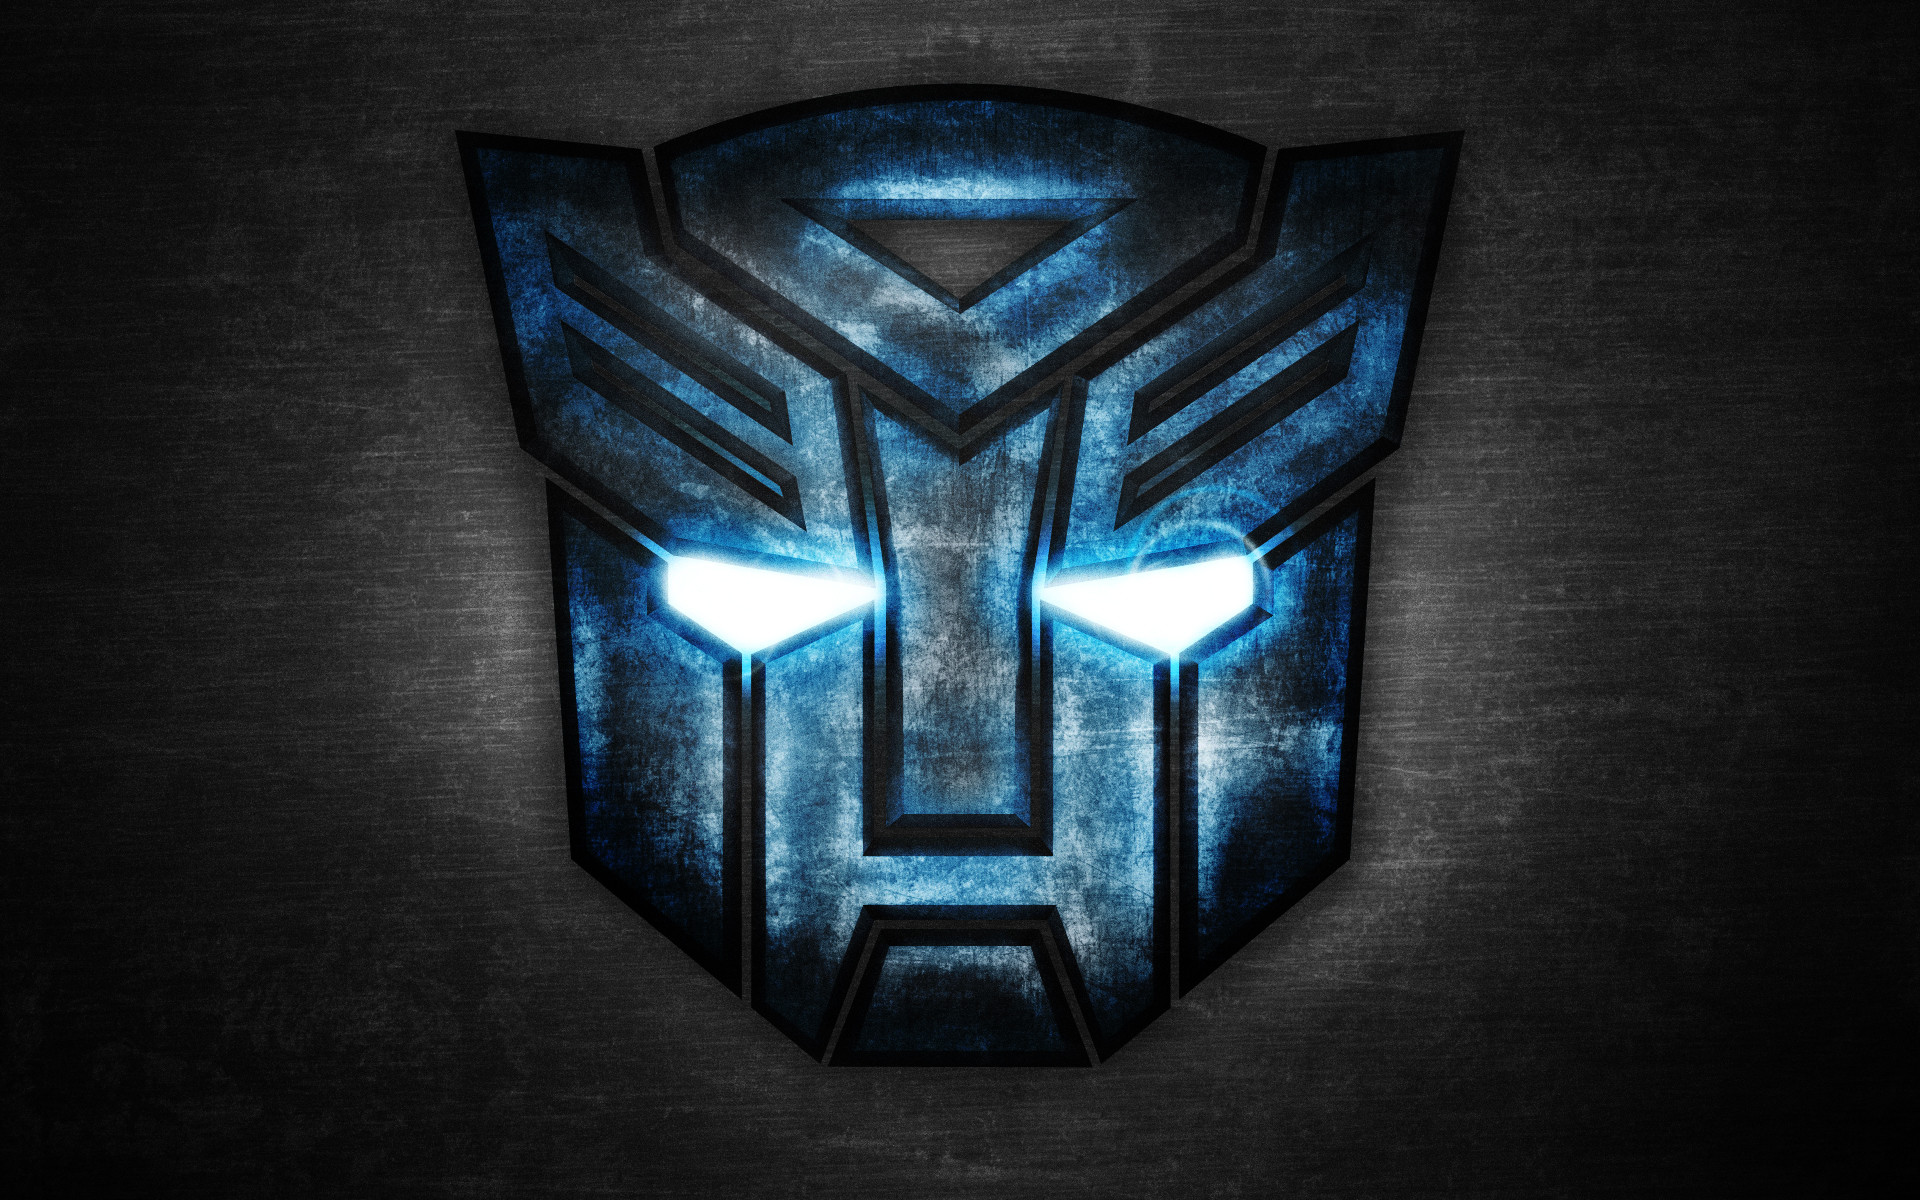 1920x1200 transformers wallpapers 7 transformers wallpapers 8